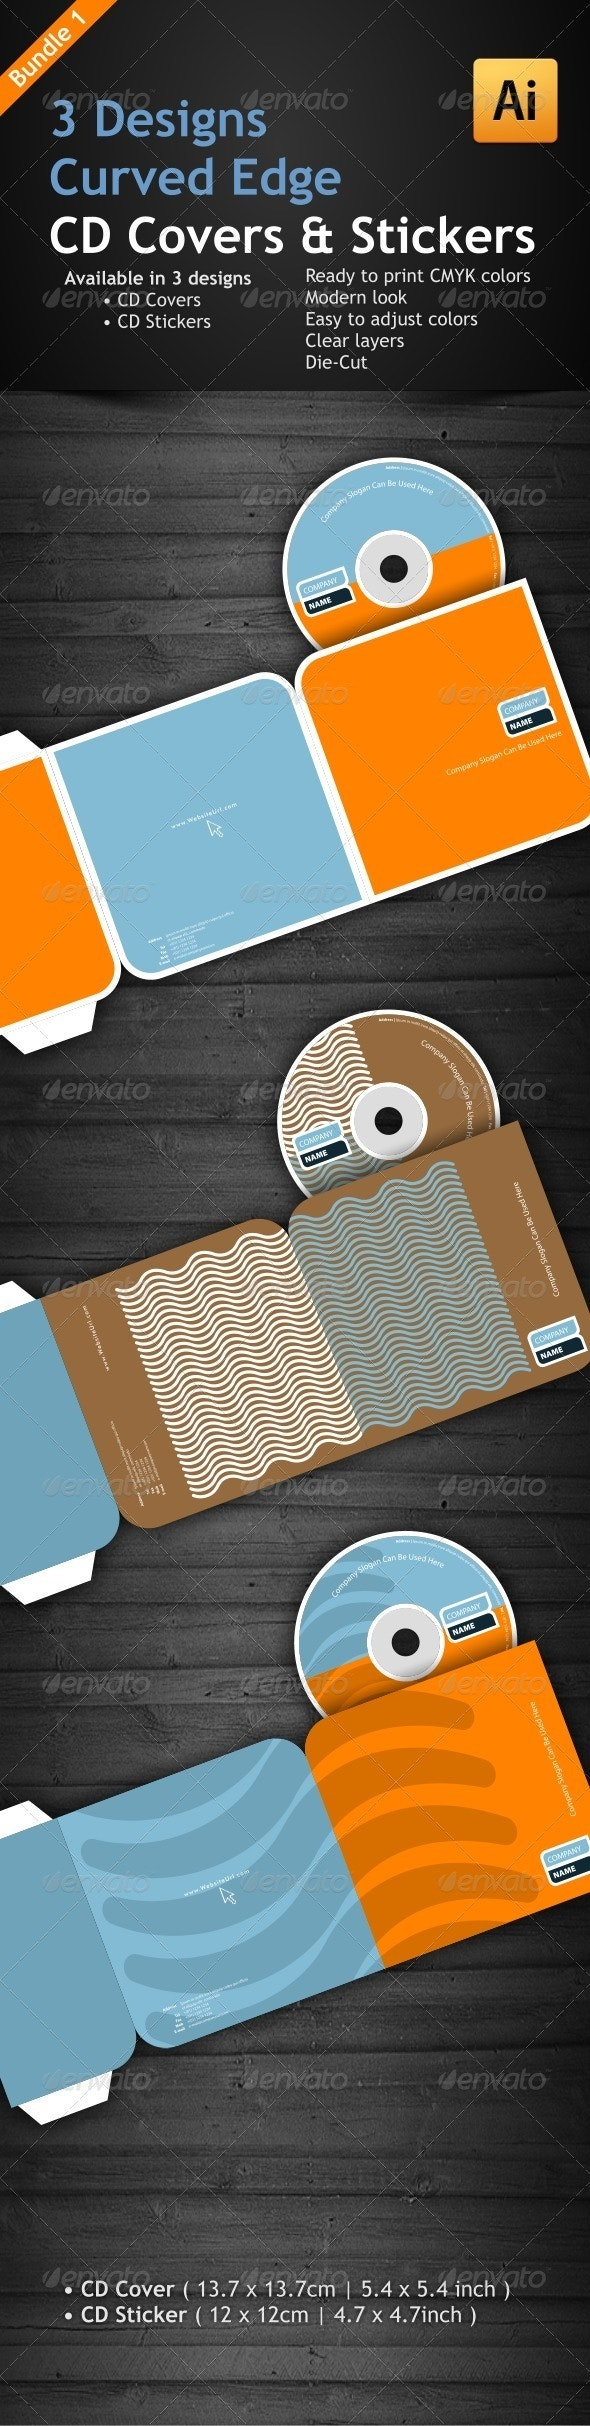 3 Curved Edge Designs for CD Covers & Stickers - CD & DVD Artwork Print Templates